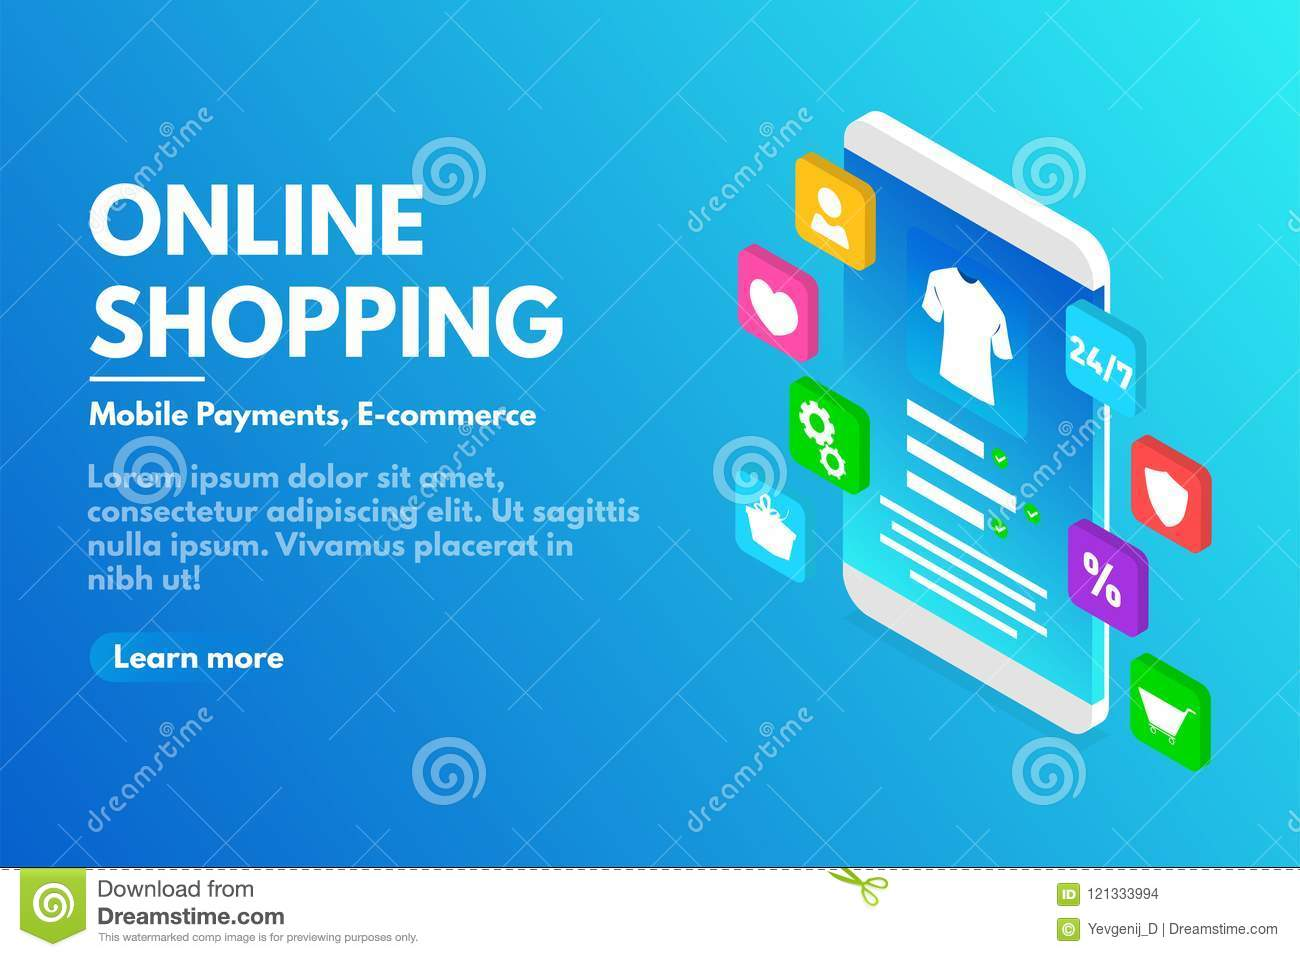 Online shopping concept. Isometric smartphone with user interface. E-commerce and online store concept